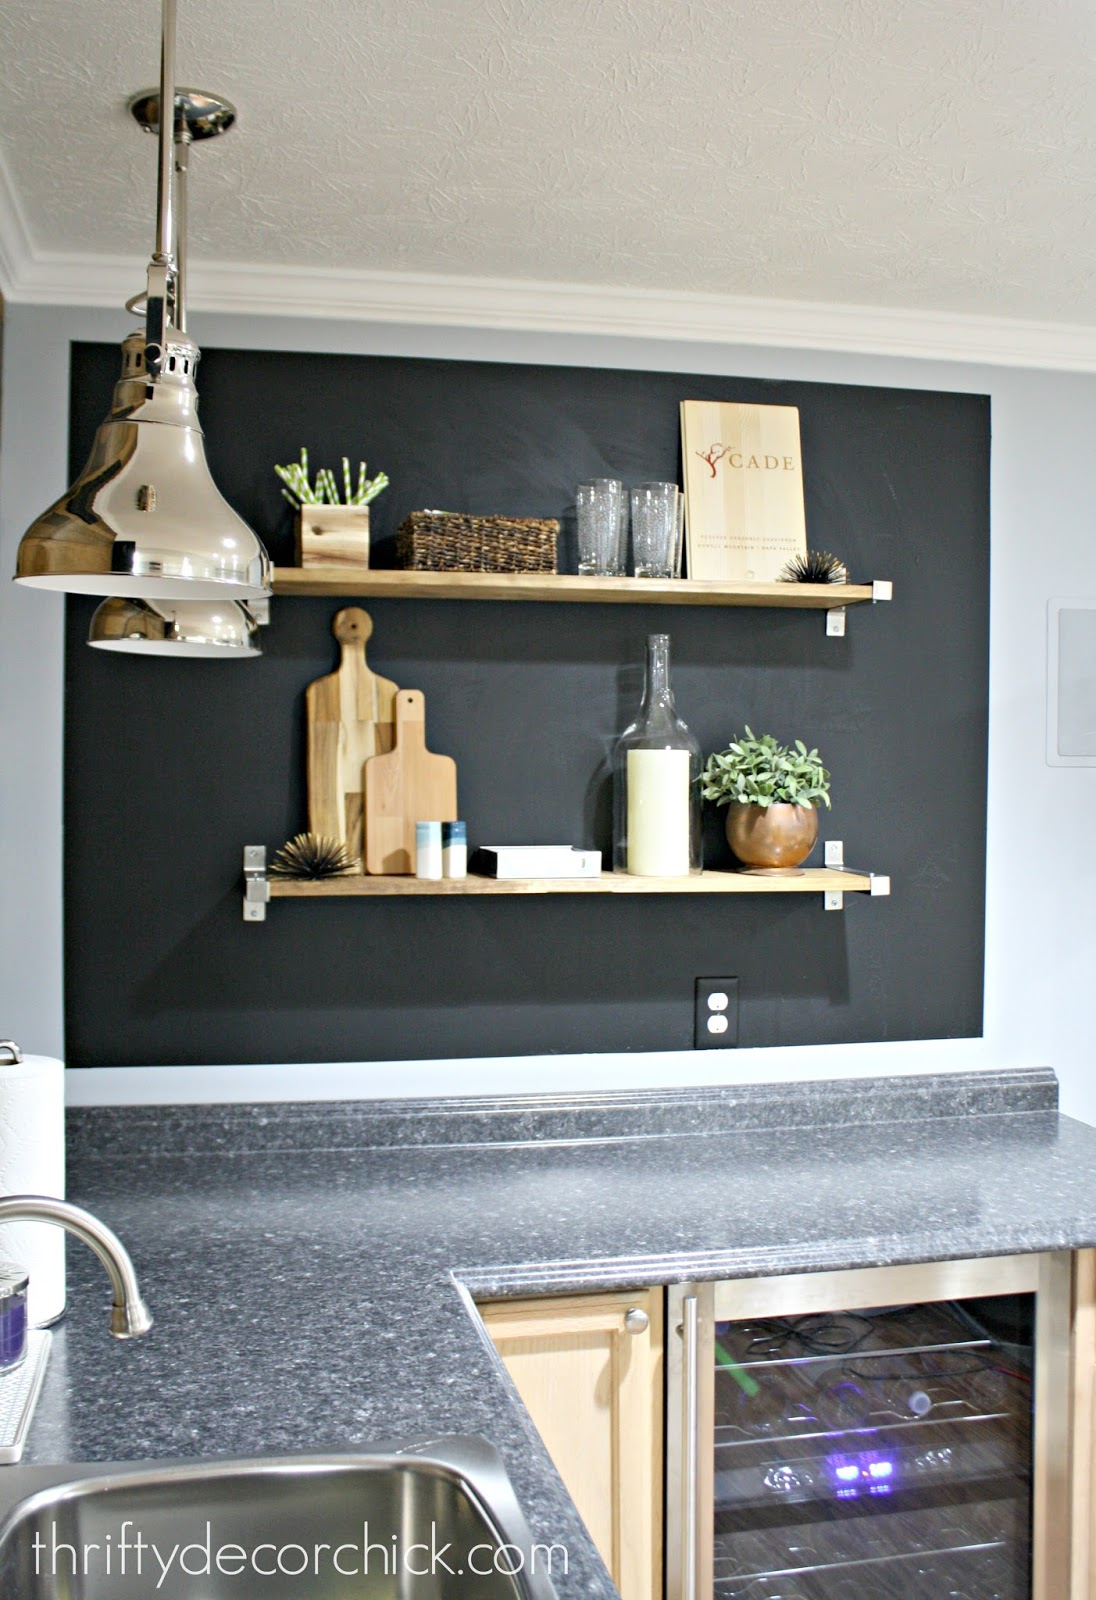 Chalkboard Wall And Open Shelving In The Basement From